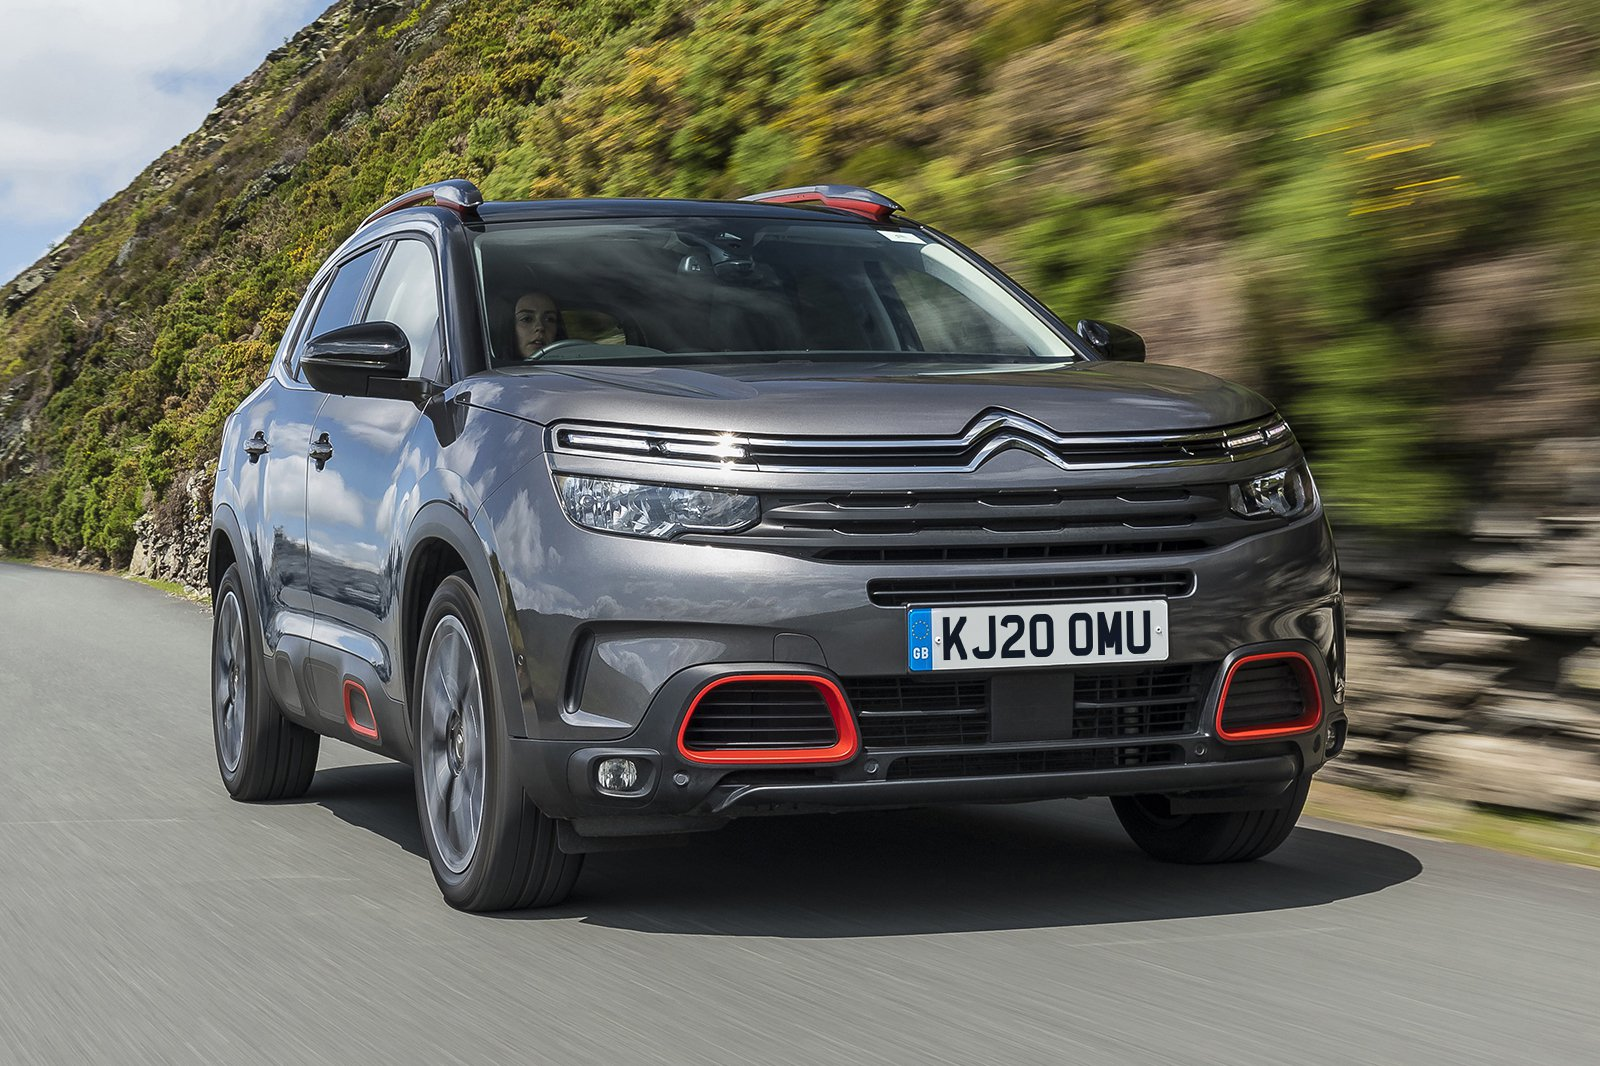 2020 Citroen C5 Aircross driving front